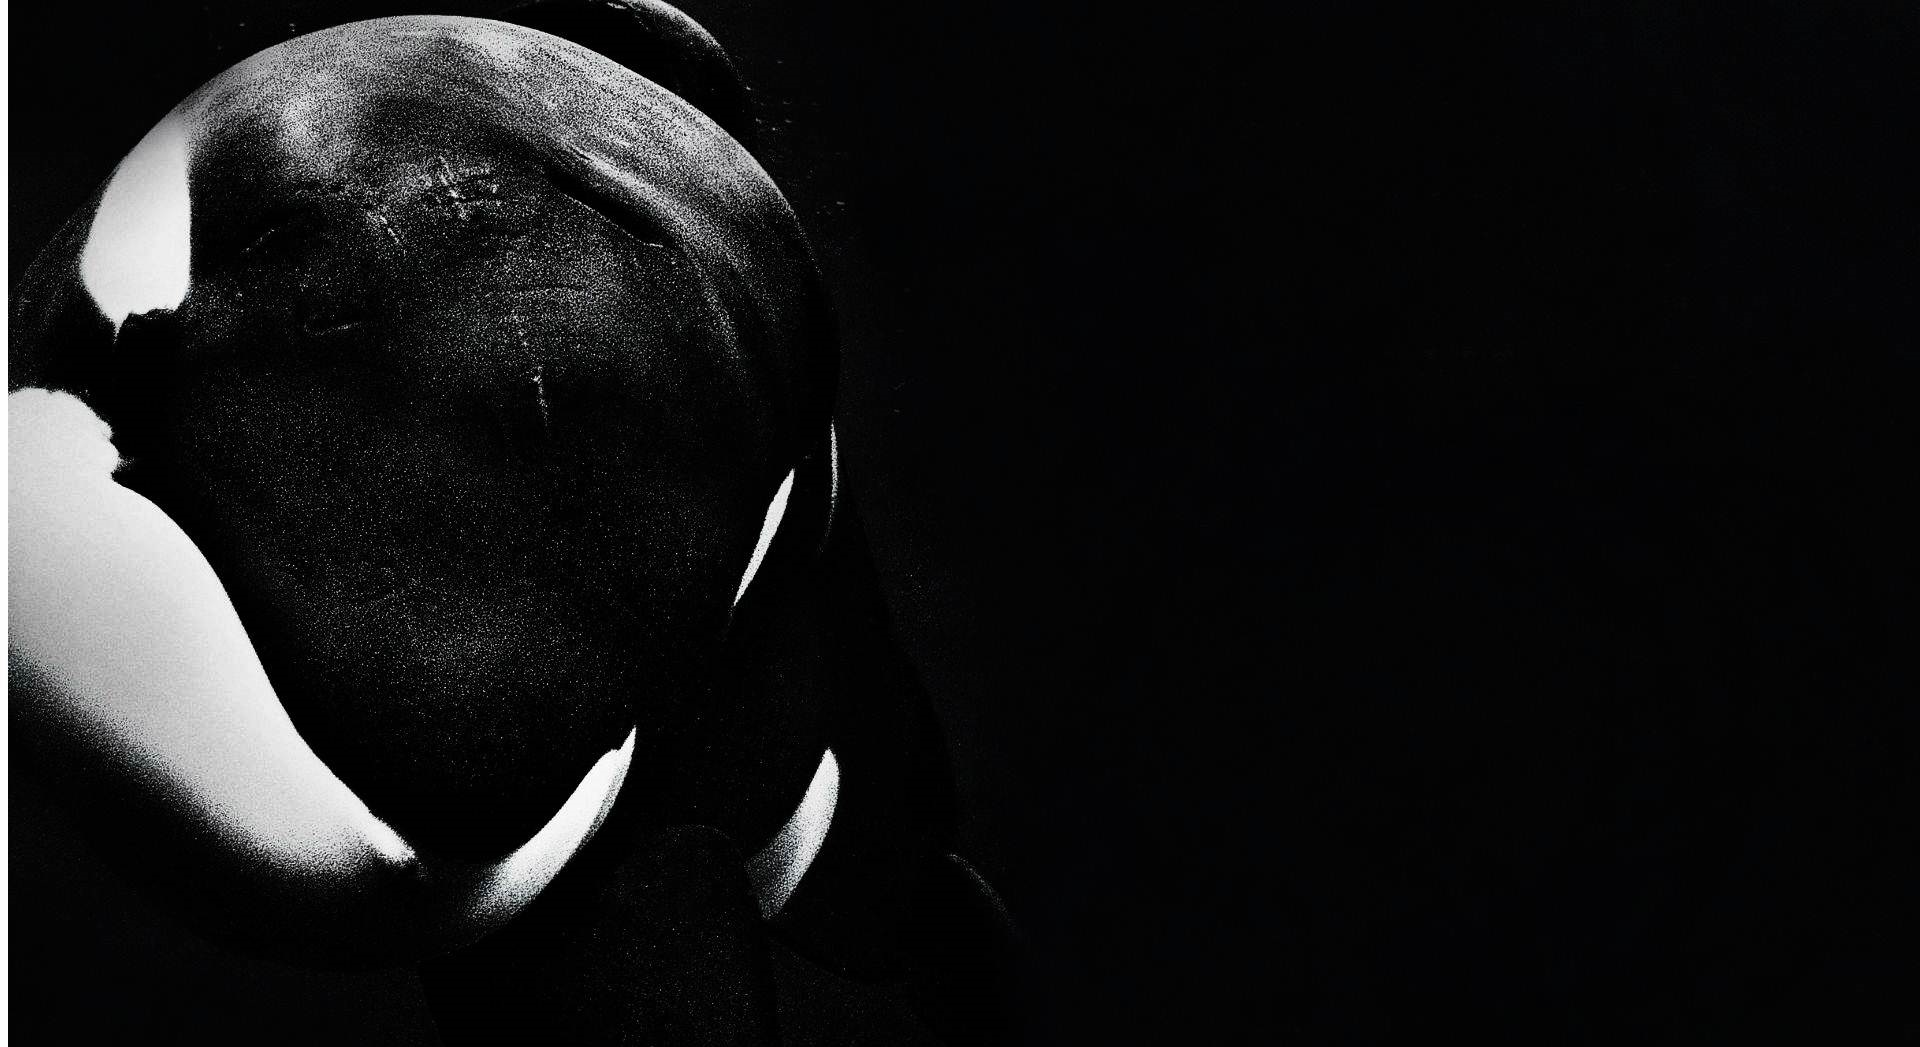 Orca whales images orca hd wallpaper and background photos 40437048 orca whales images orca hd wallpaper and background photos altavistaventures Images